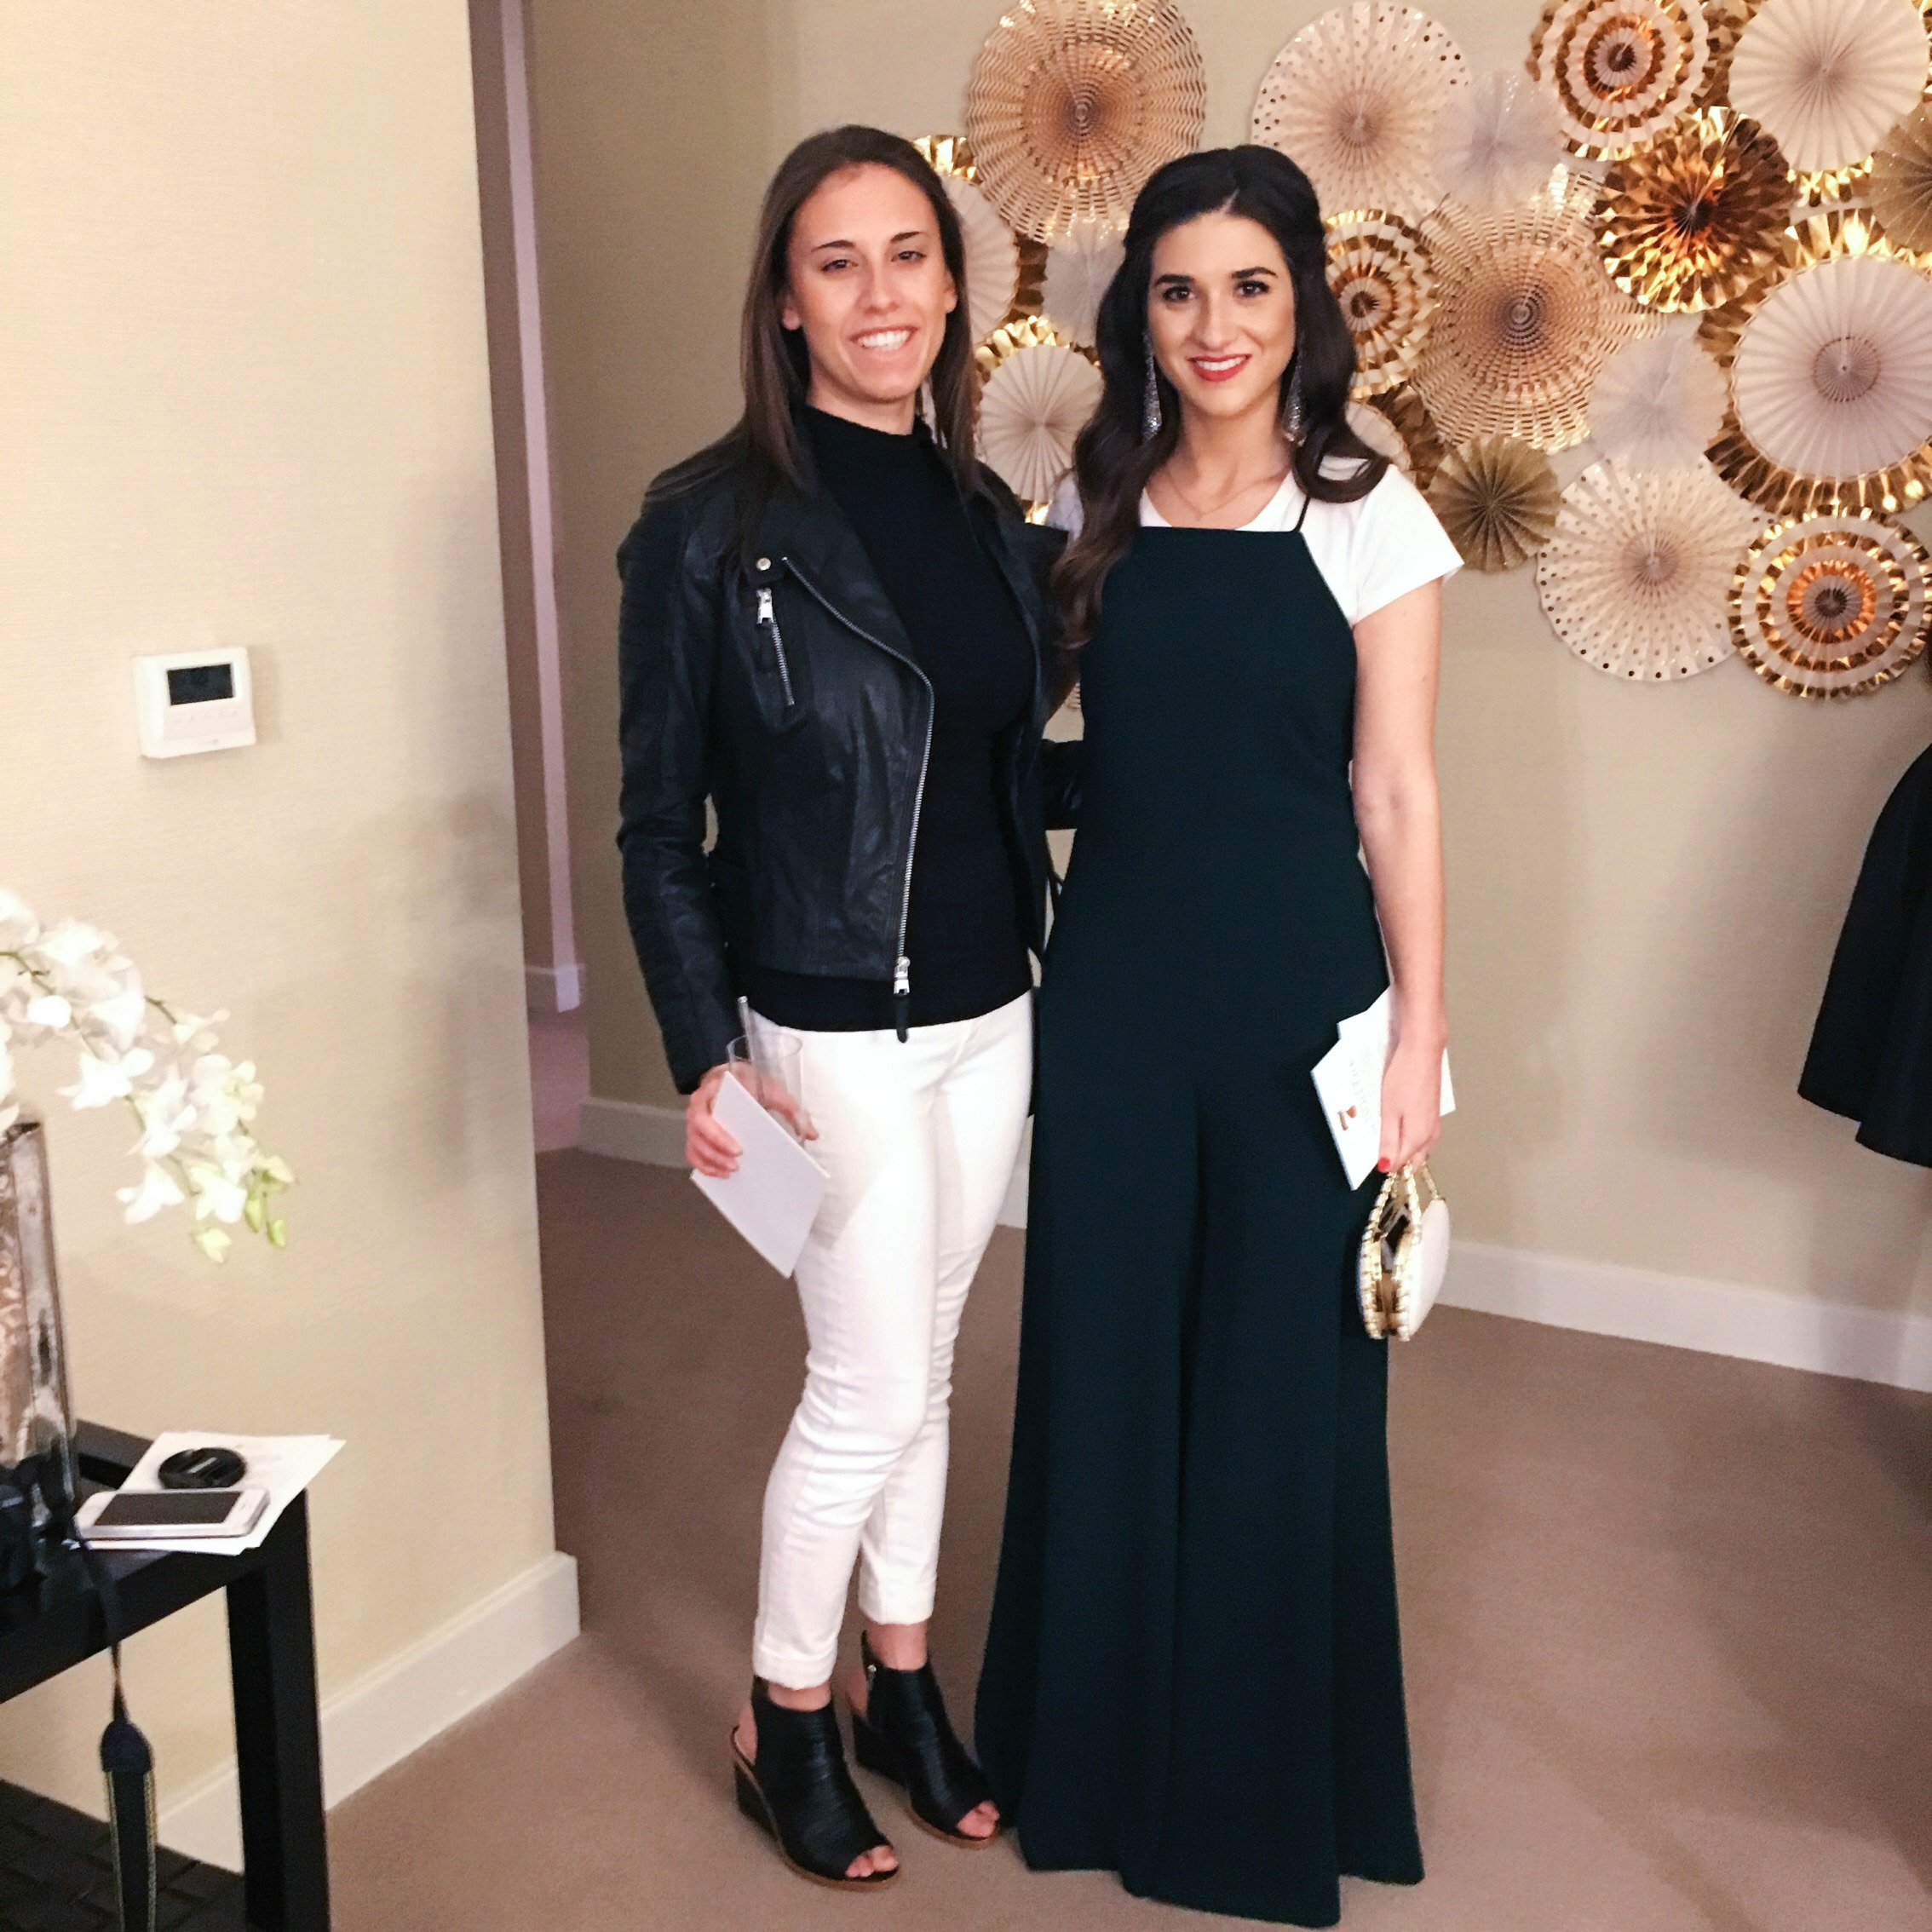 Girls' Night In With Ivanka Trump Louboutins & Love Fashion Blog Esther Santer NYC Street Style Blogger Trump Towers Soho Tote Girls Event Celebs Party Fancy White Tee  Zara Green Jumpsuit Elahn Jewels Diamond Earrings Preta Fringe Booties OOTD Outfit.jpg